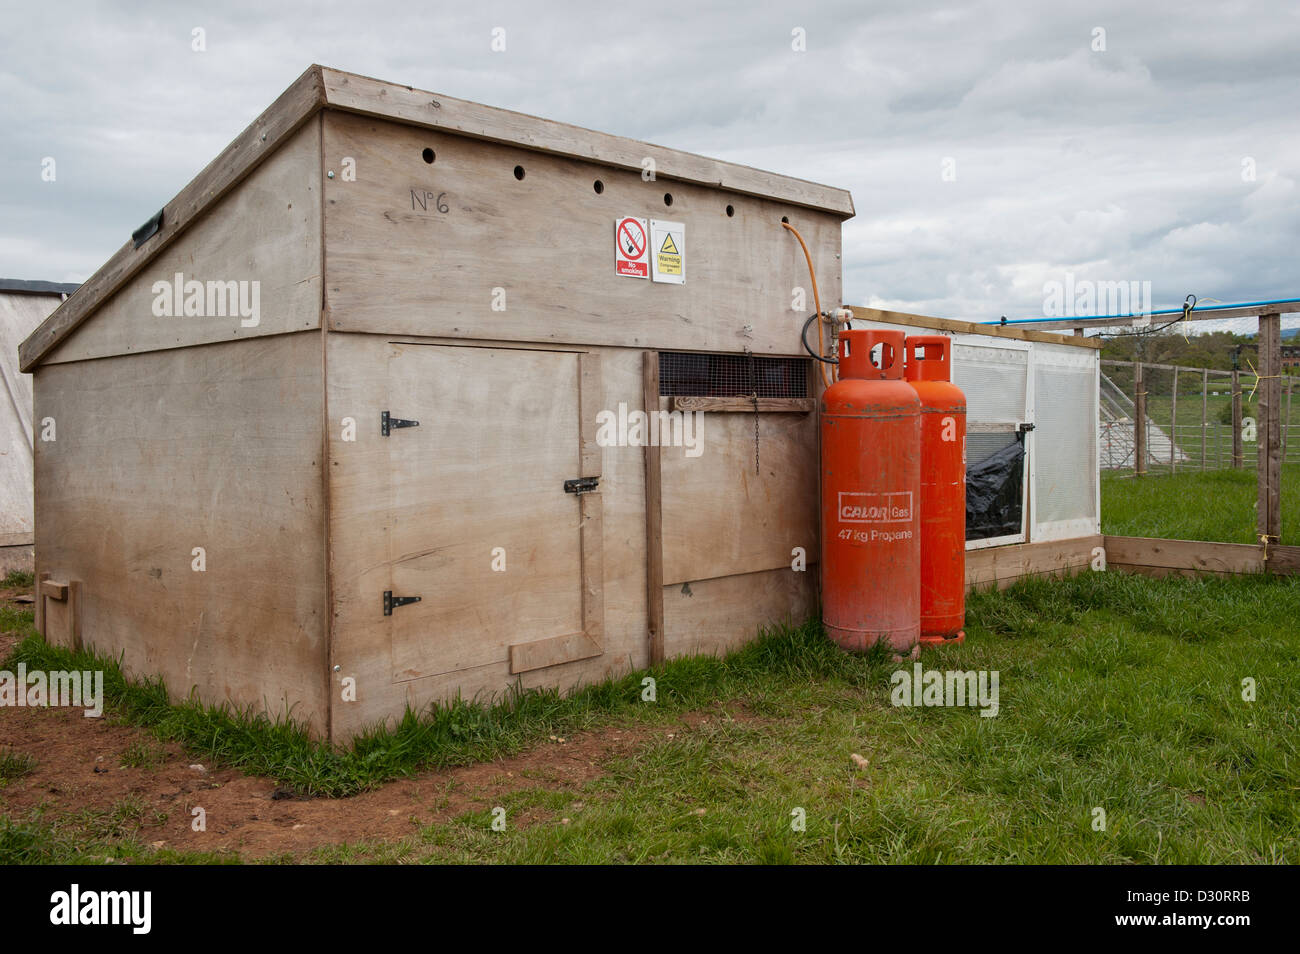 Gamebird rearing shed on a shooting estate. - Stock Image